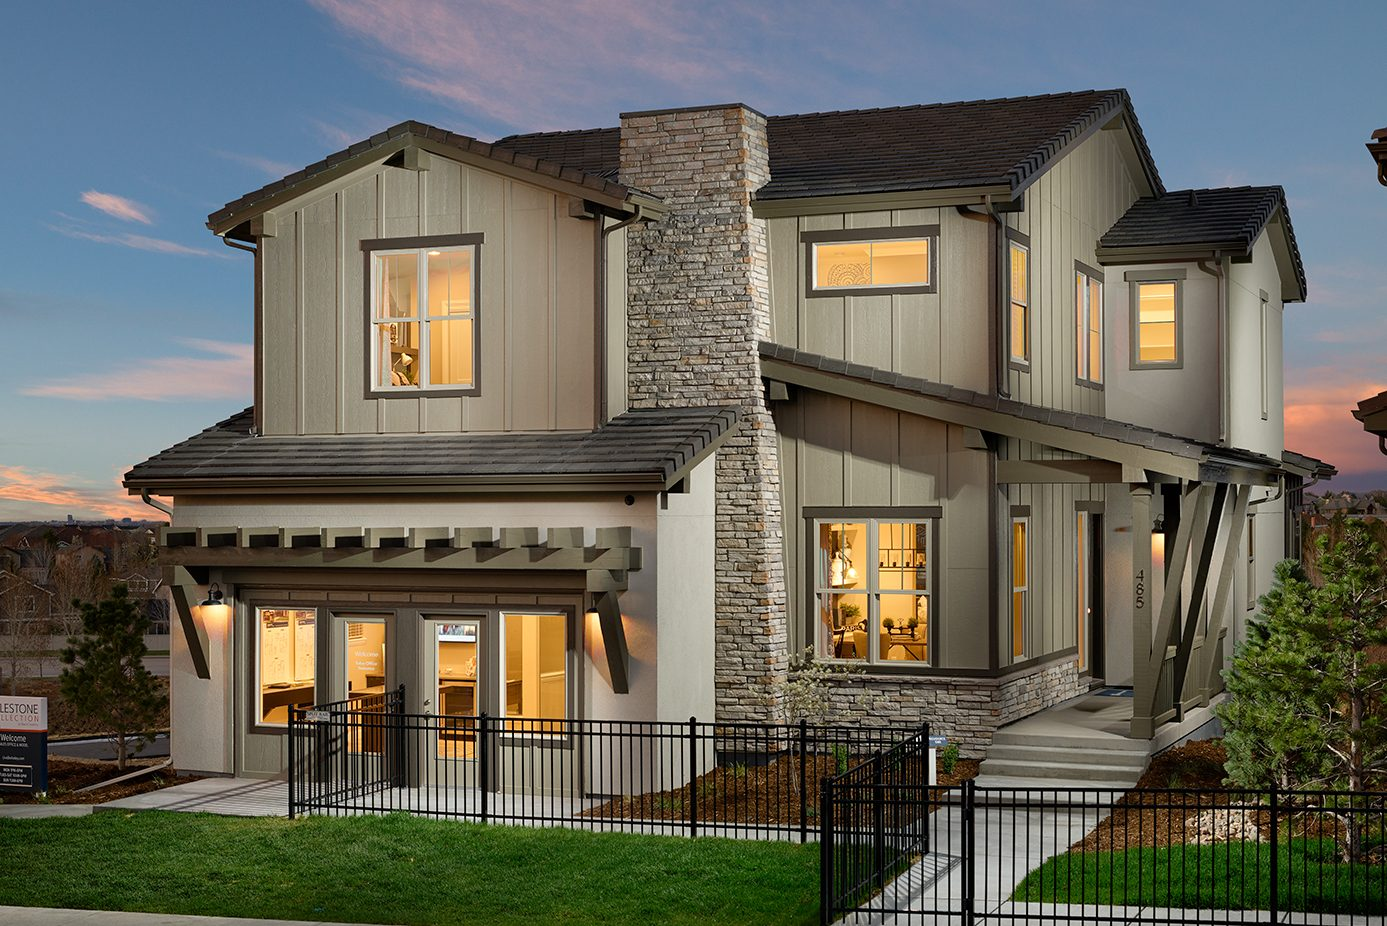 Award winning residential architecture firm single family home